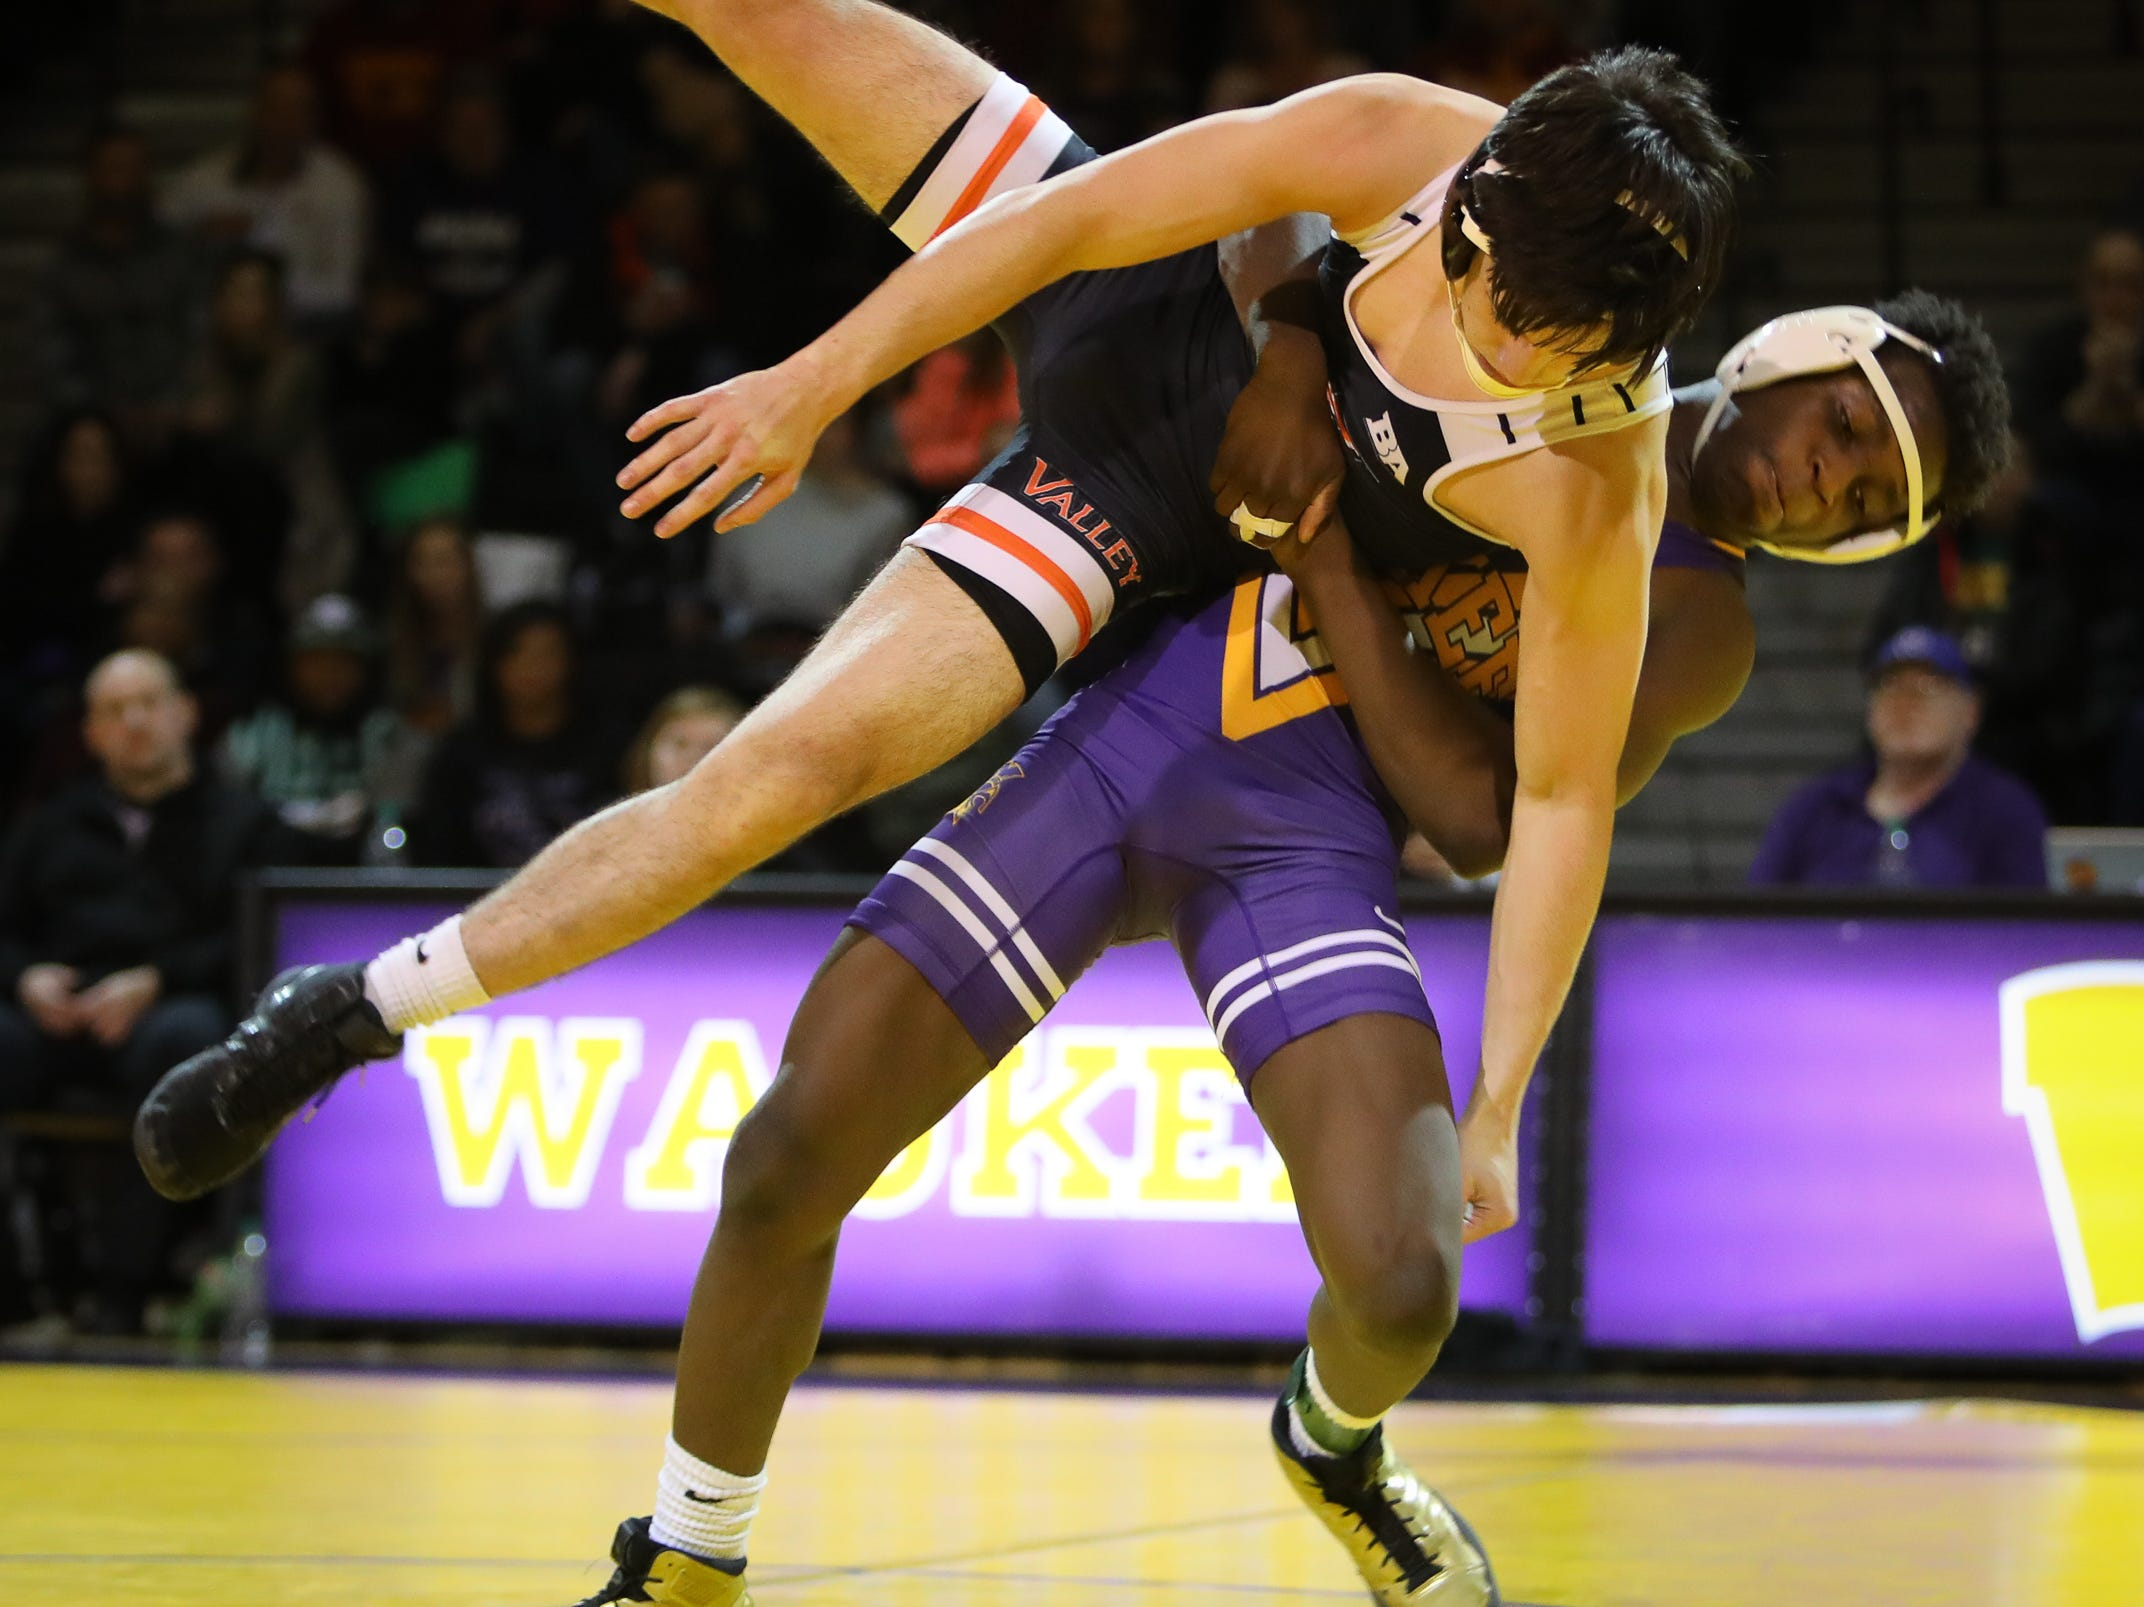 Valley senior Jackson Lukehart takes down Waukee sophomore Jermaine Sammler in the 145-pound weight class during a high school wrestling meet between the Valley Tigers and the Waukee Warriors at Waukee High School on Dec. 20, 2018 in Waukee, Iowa.